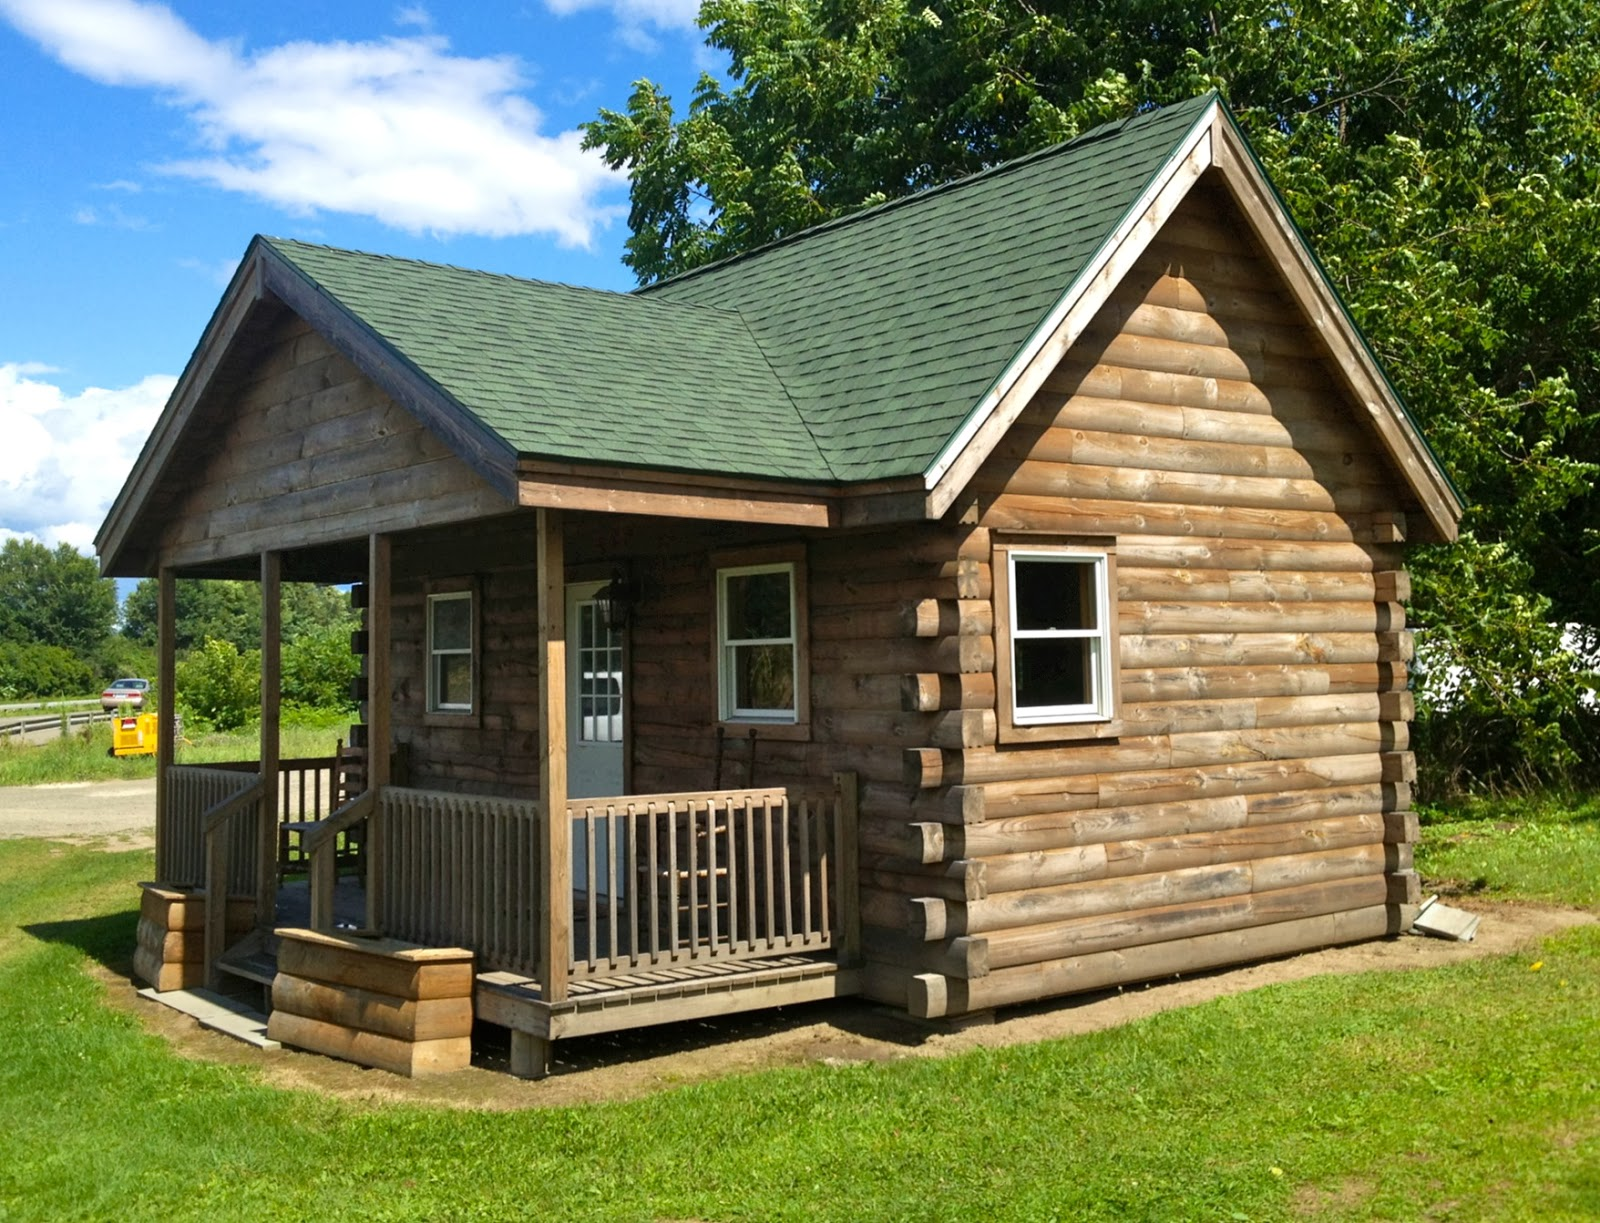 Tiny Home Designs: Country Home With Wood